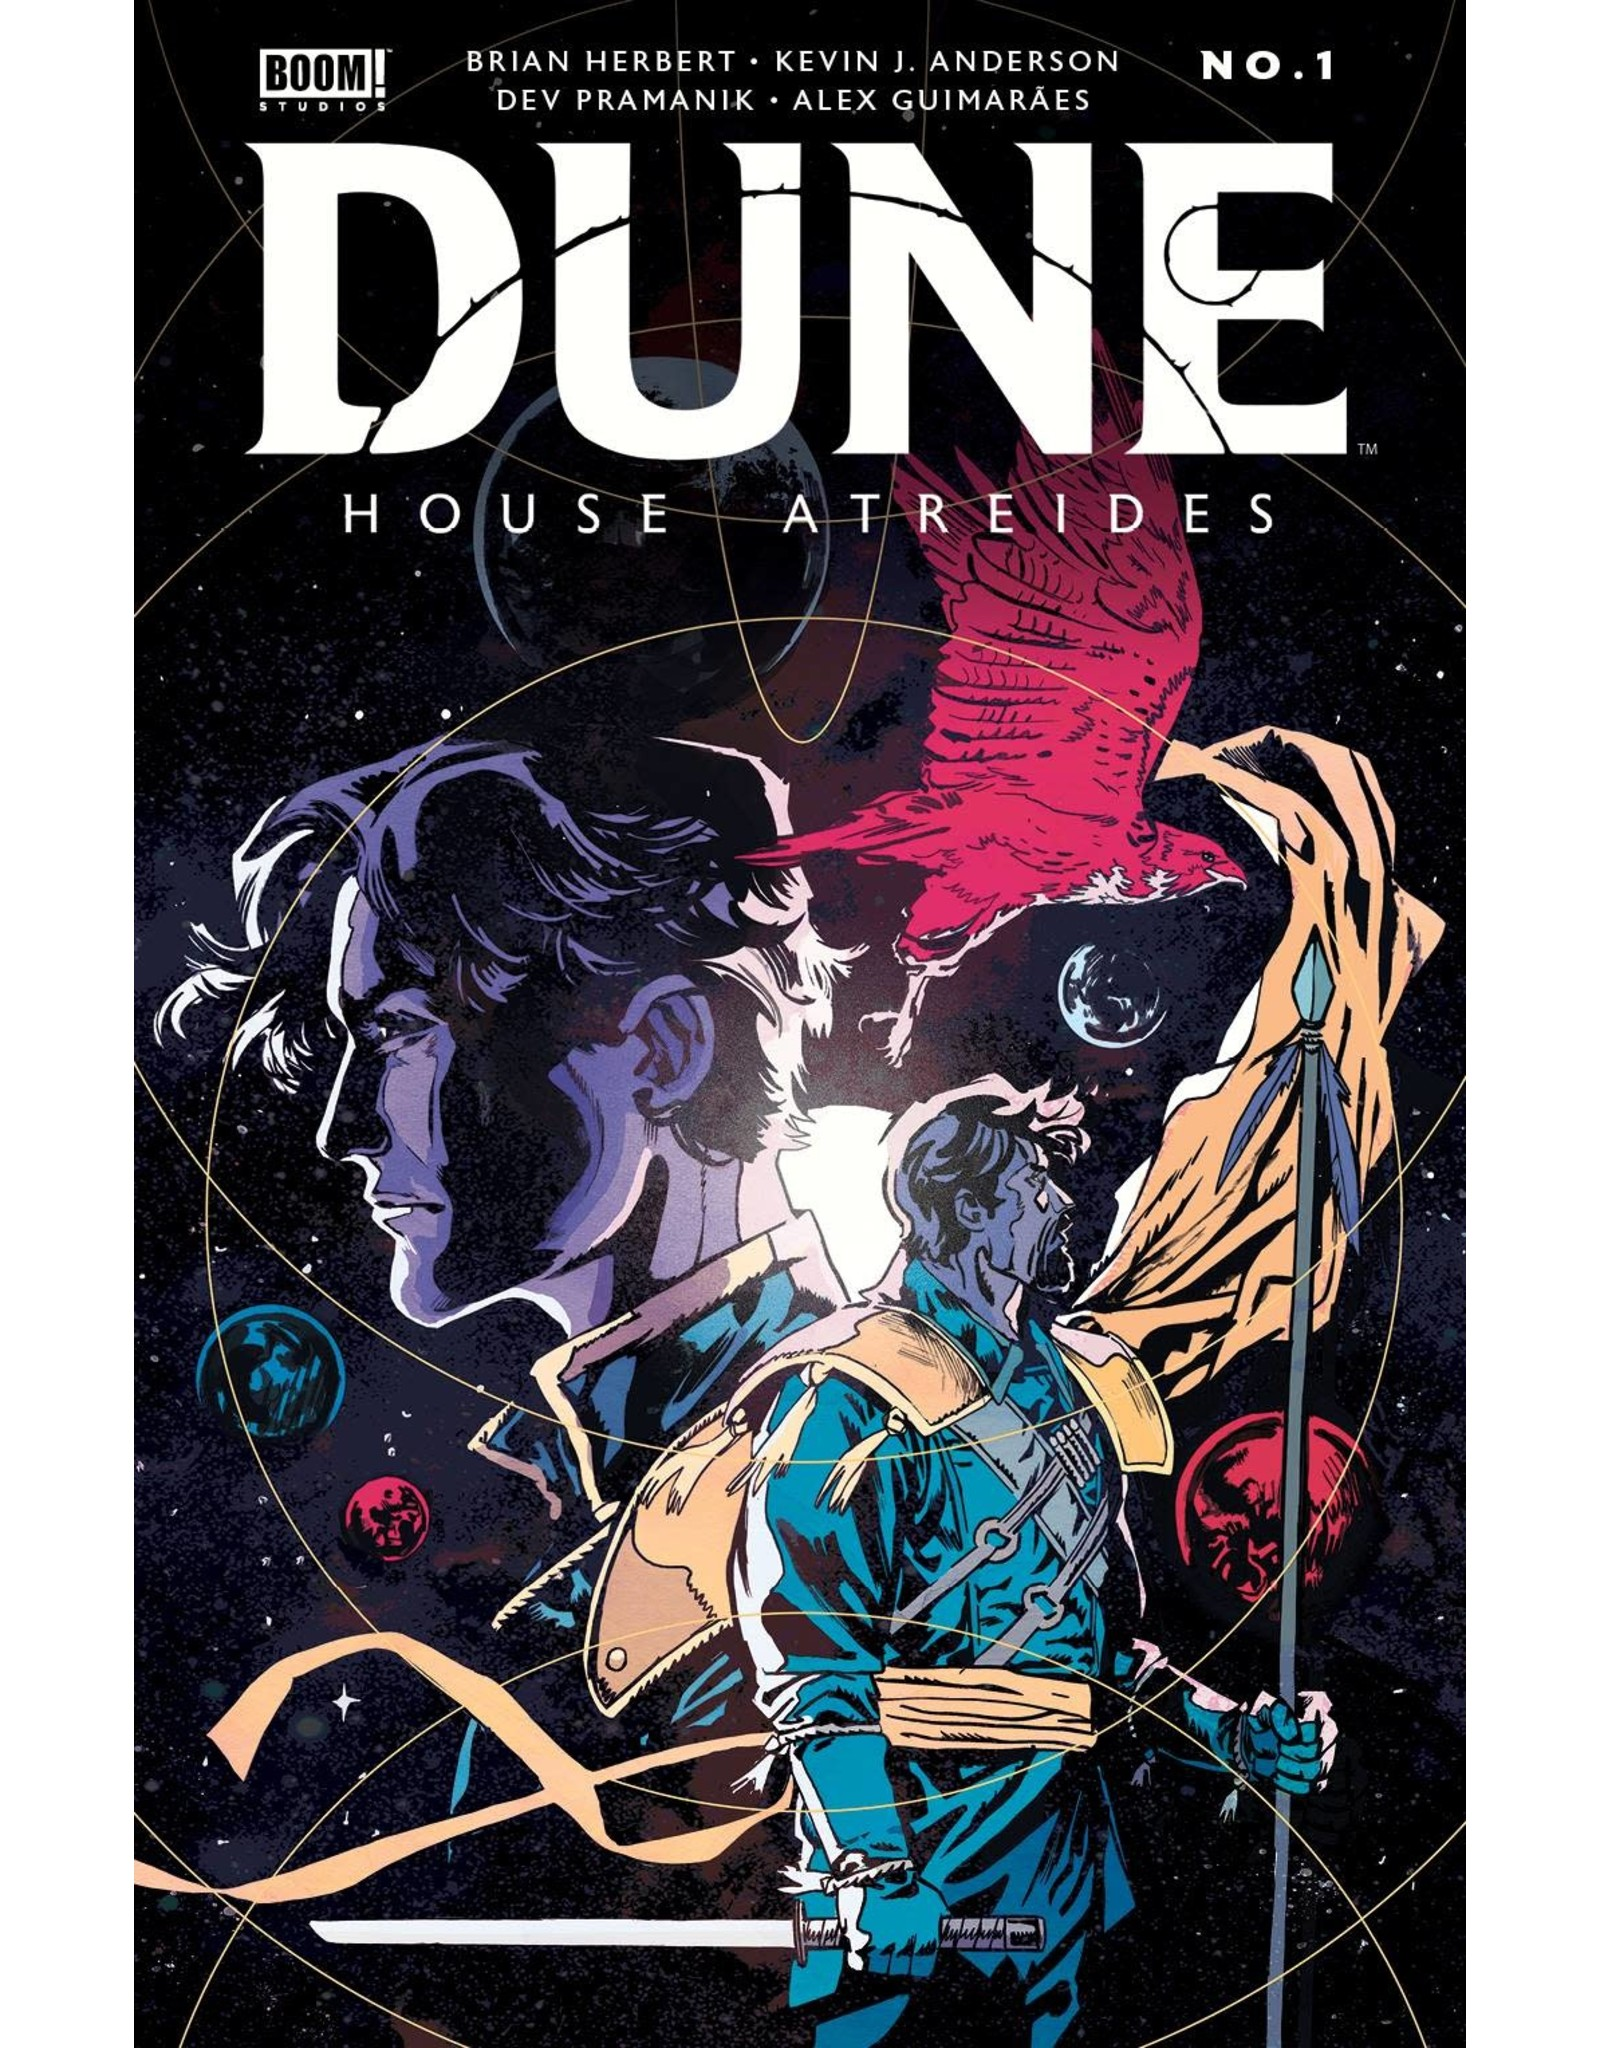 BOOM ENTERTAINMENT DUNE HOUSE ATREIDES #1 (OF 12) 2ND PTG